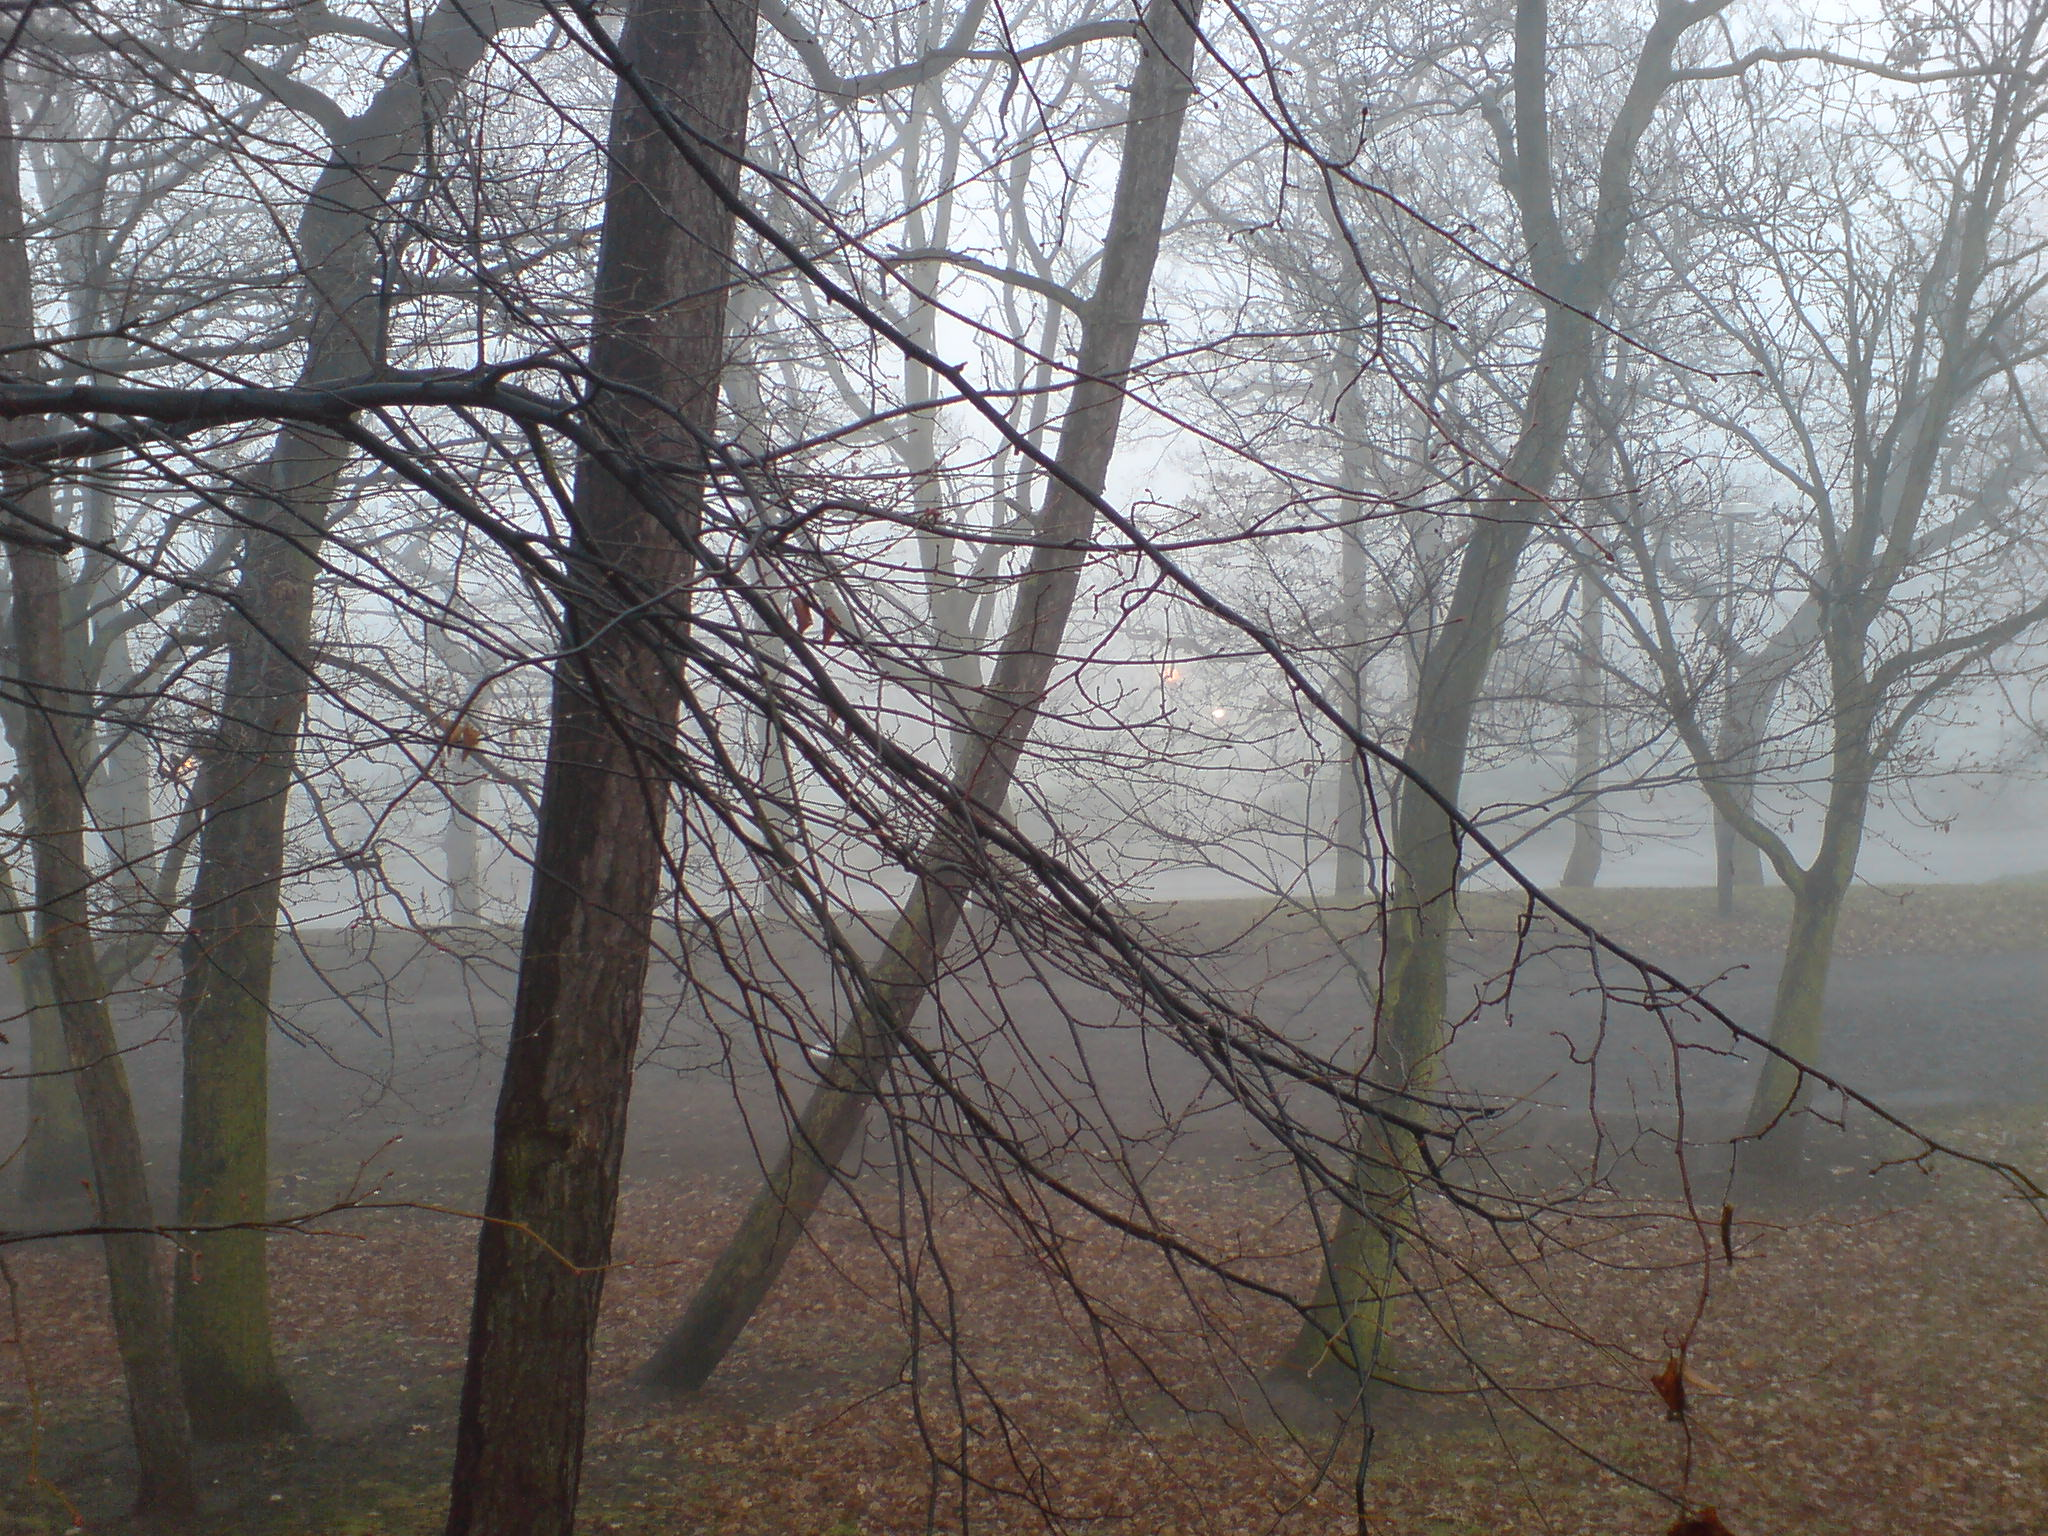 Foggy in the park 3 by rudeturk